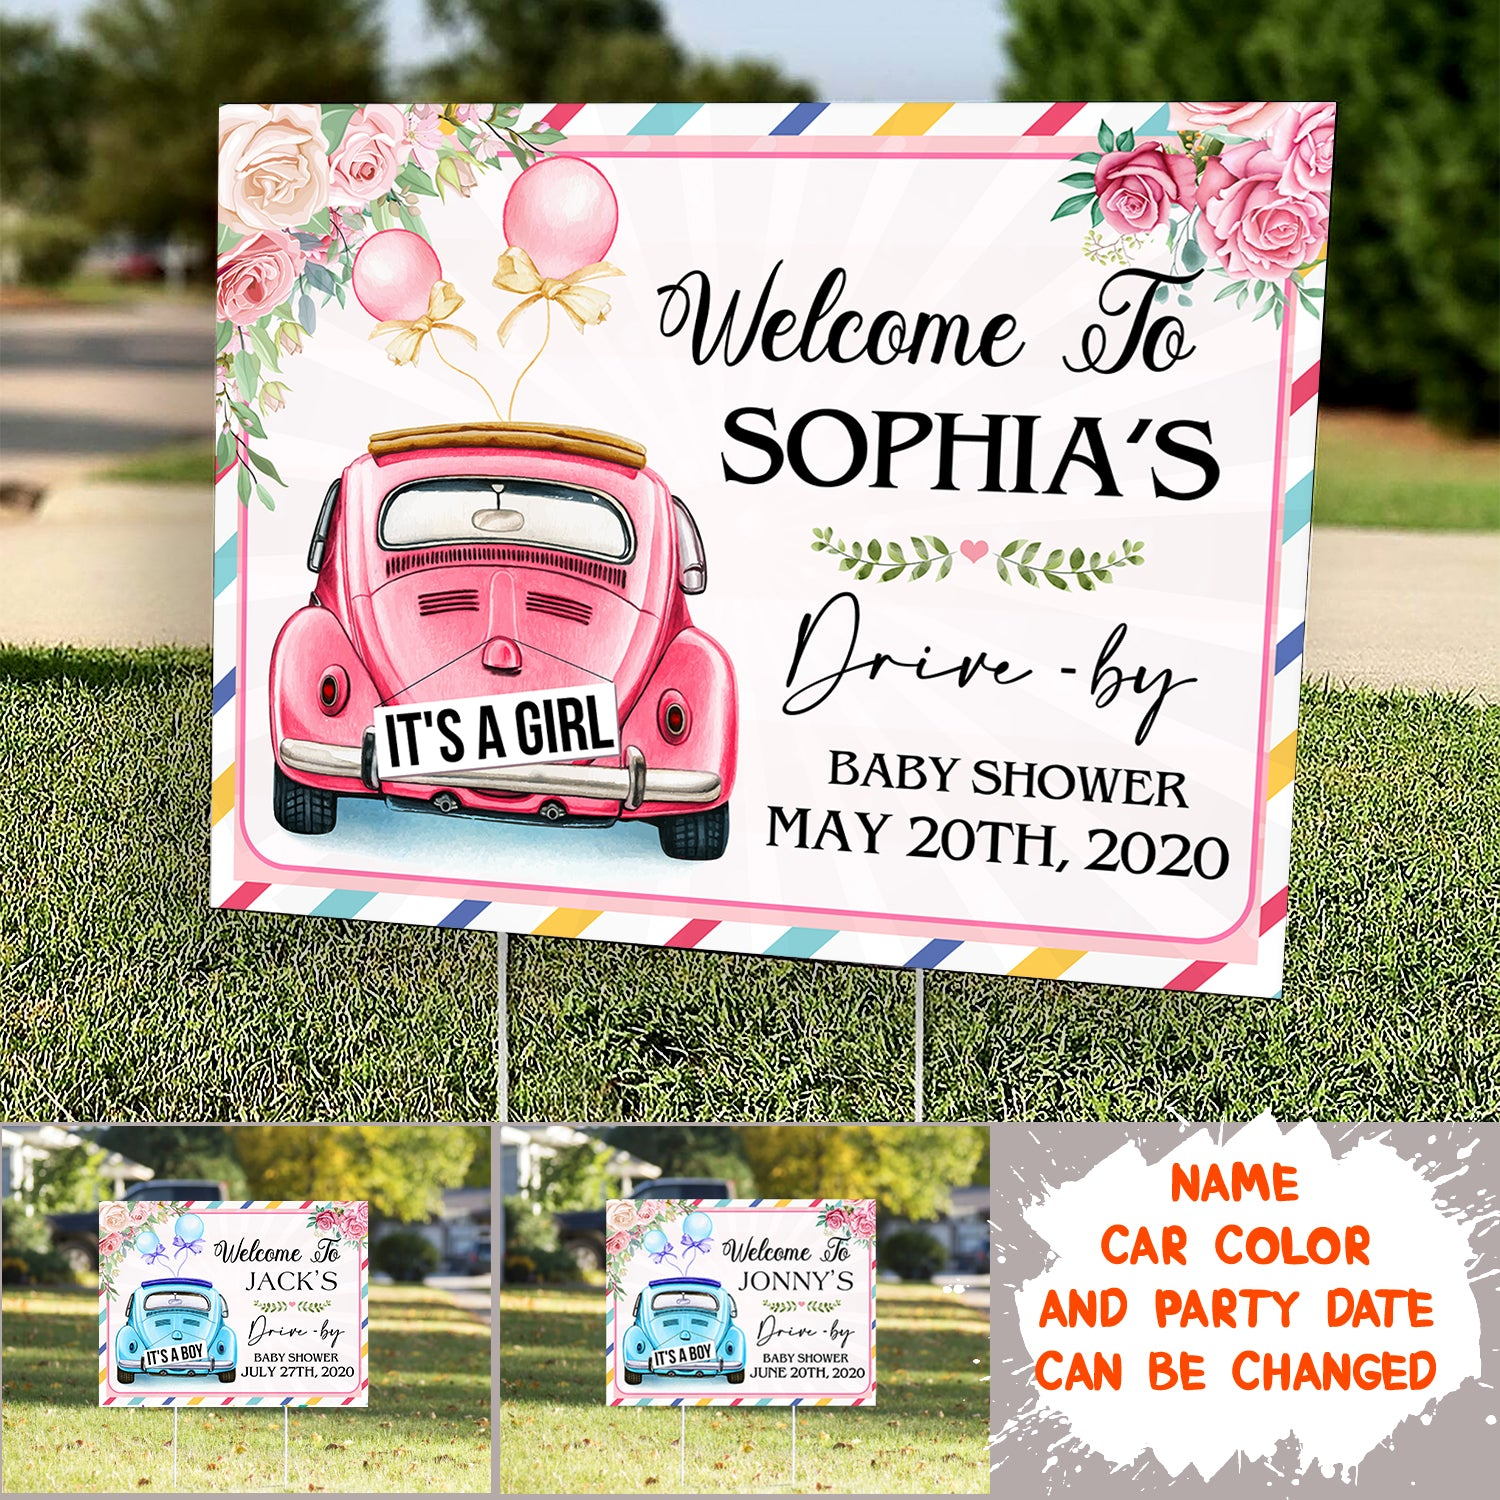 Personalized Custom Yard Sign - Welcome - Drive By Baby Shower Yard Sign - 7223